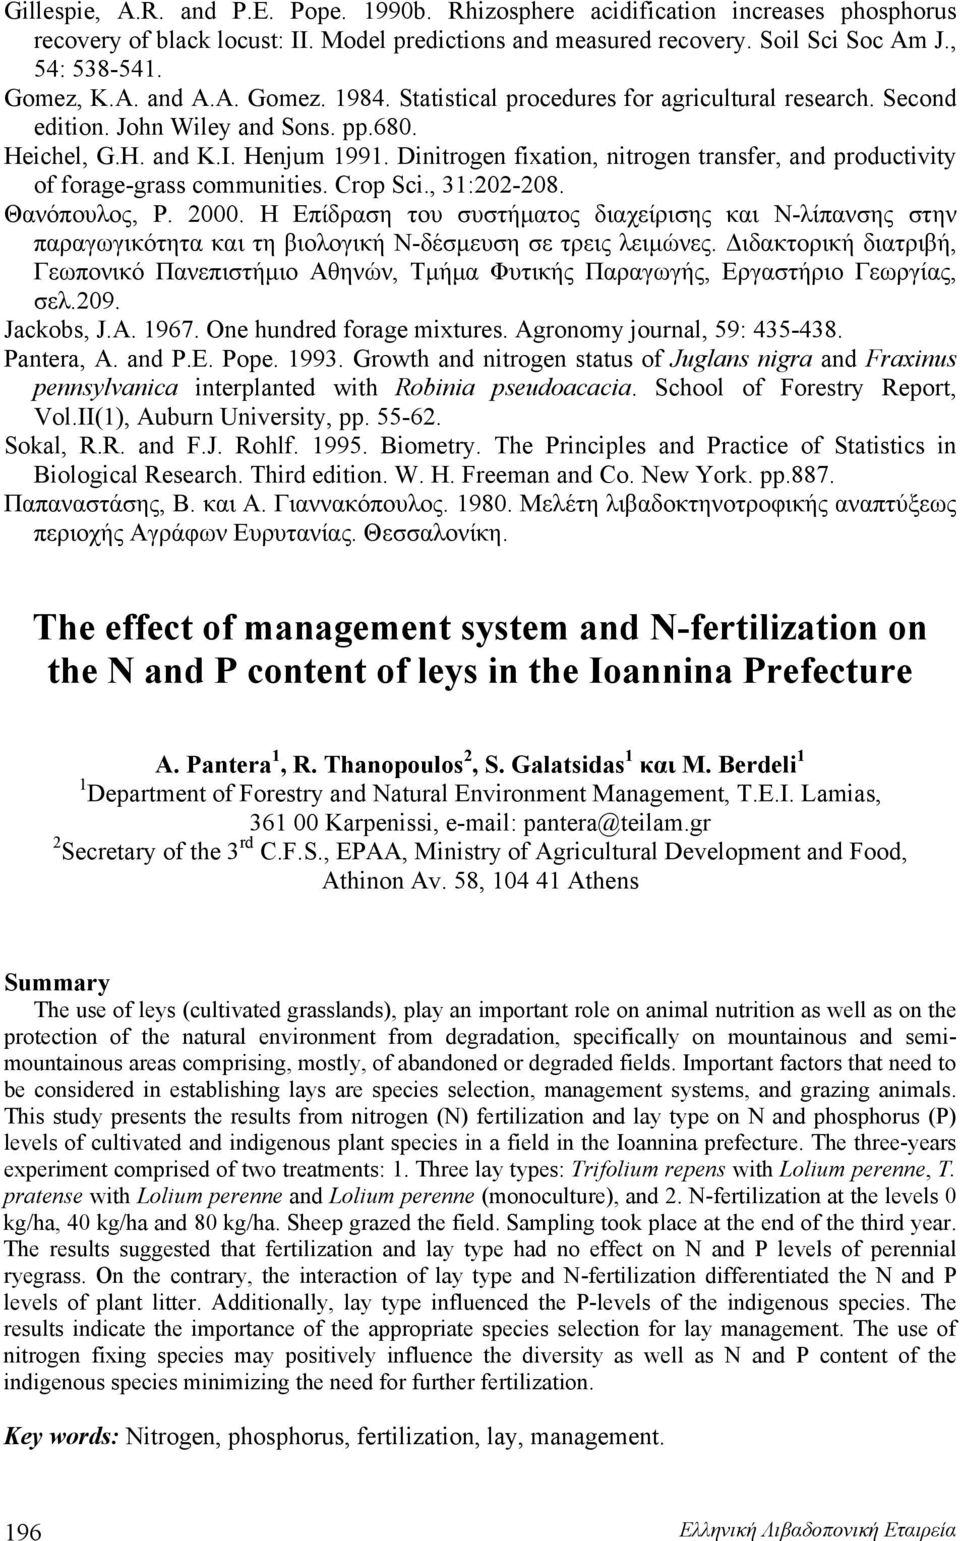 Dinitrogen fixation, nitrogen transfer, and productivity of forage-grass communities. Crop Sci., 31:202-208. Θανόπουλος, Ρ. 2000.